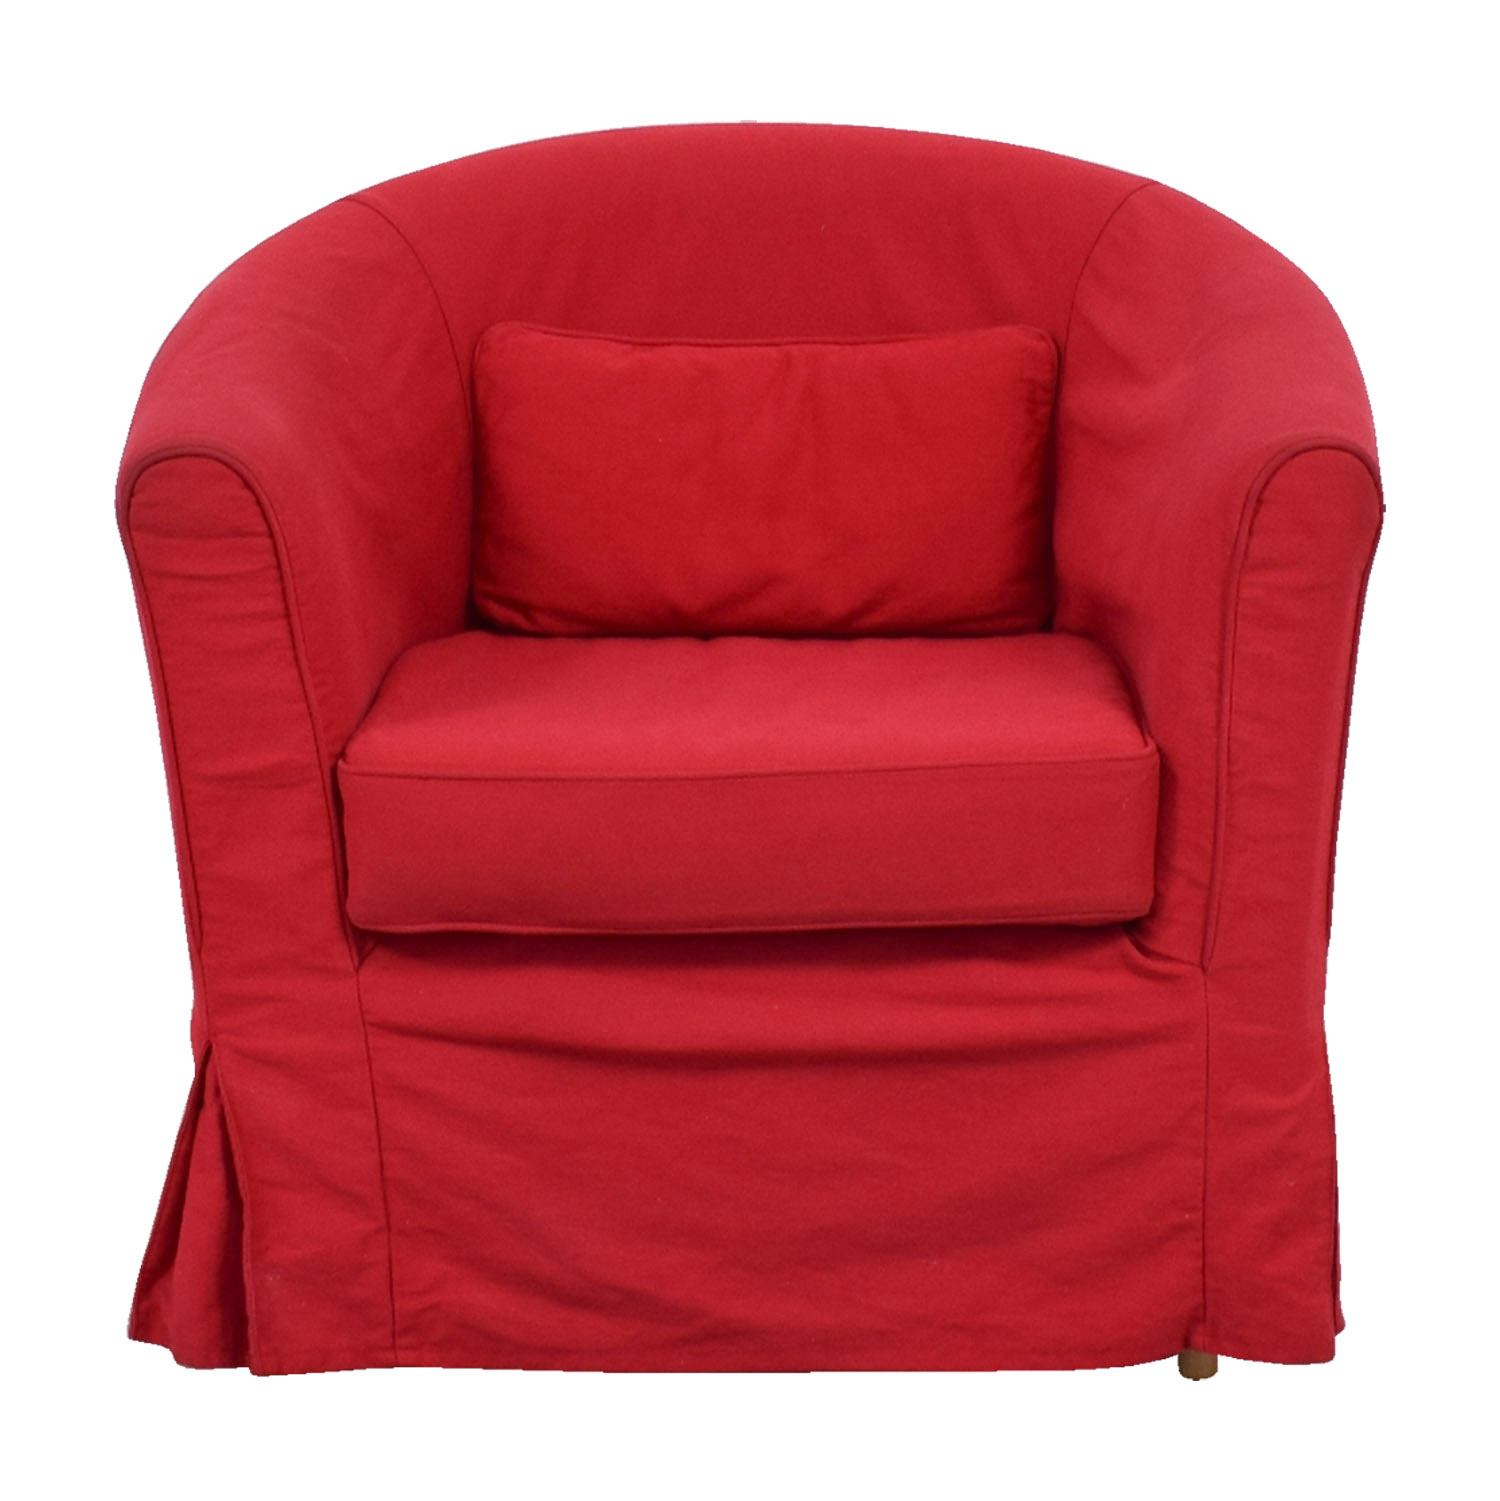 Crate barrel crate barrel red upholstered chair with removable cover second hand